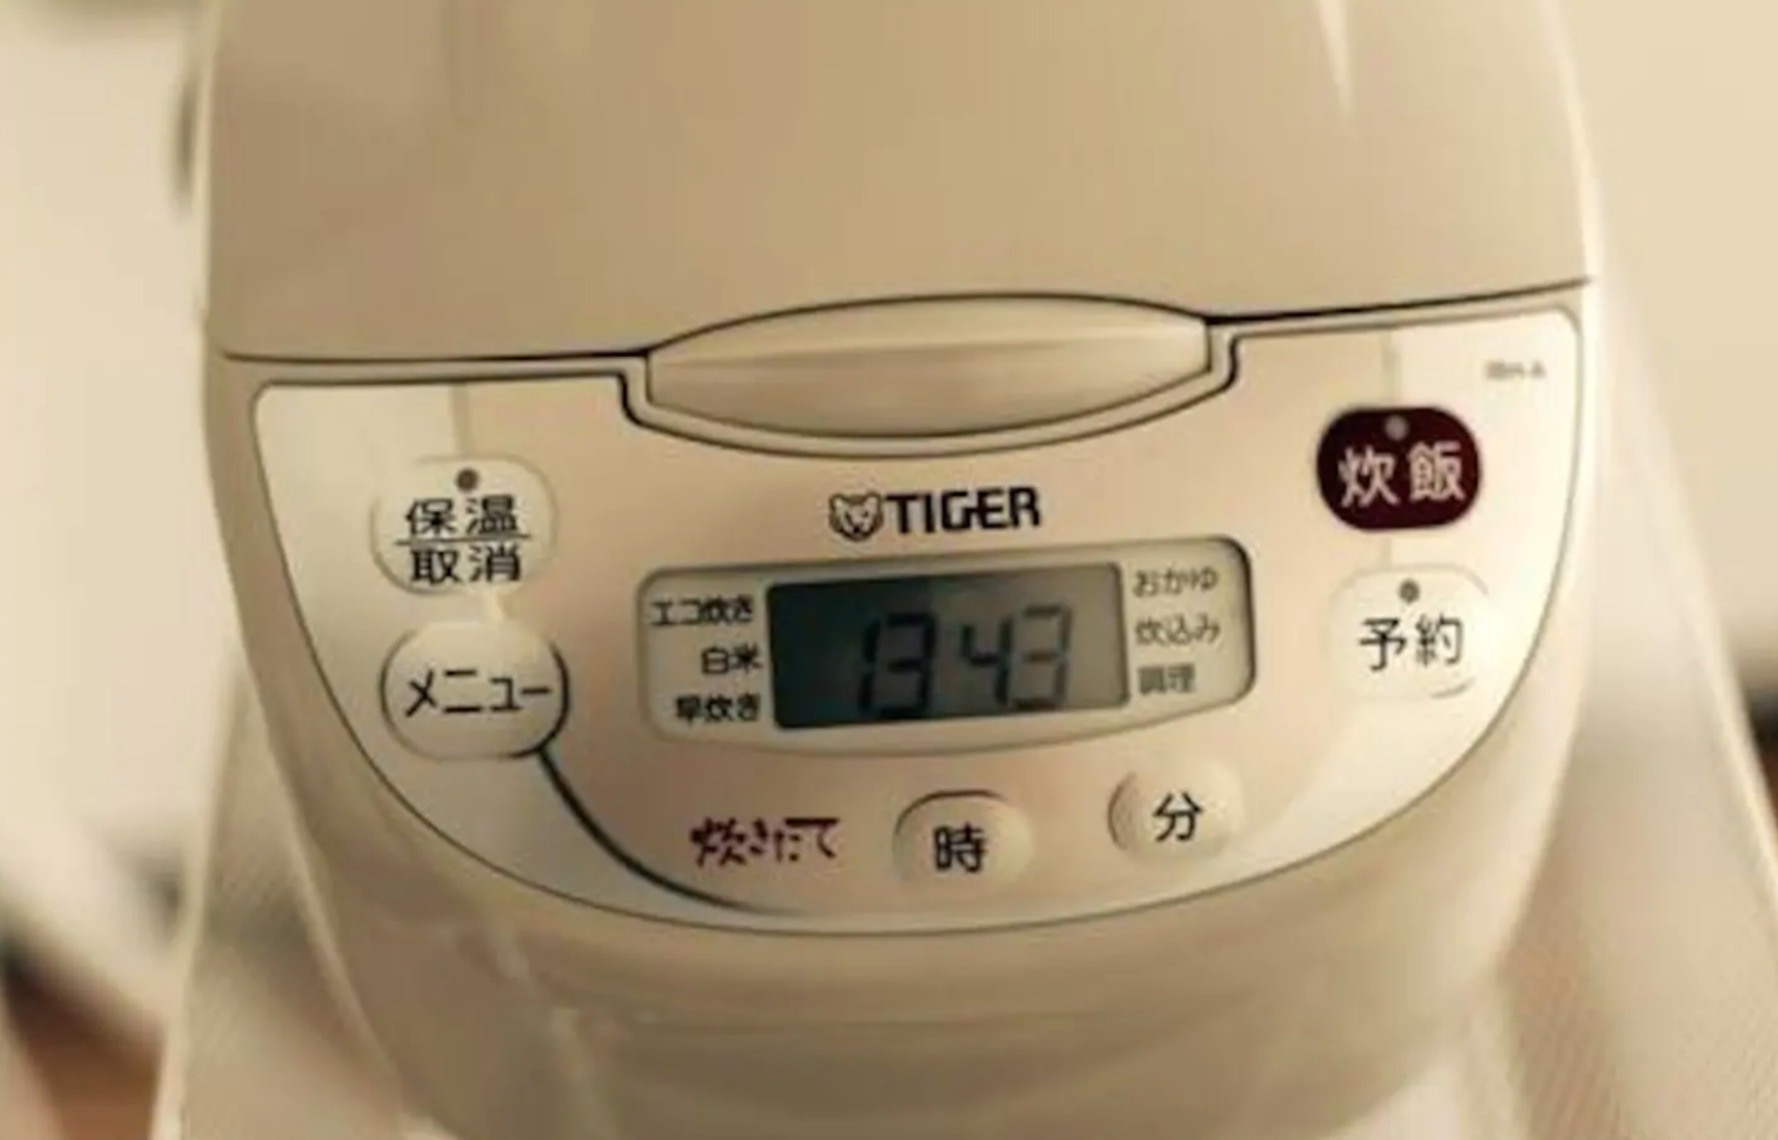 You can cook rice! うれしい炊飯器付き♪